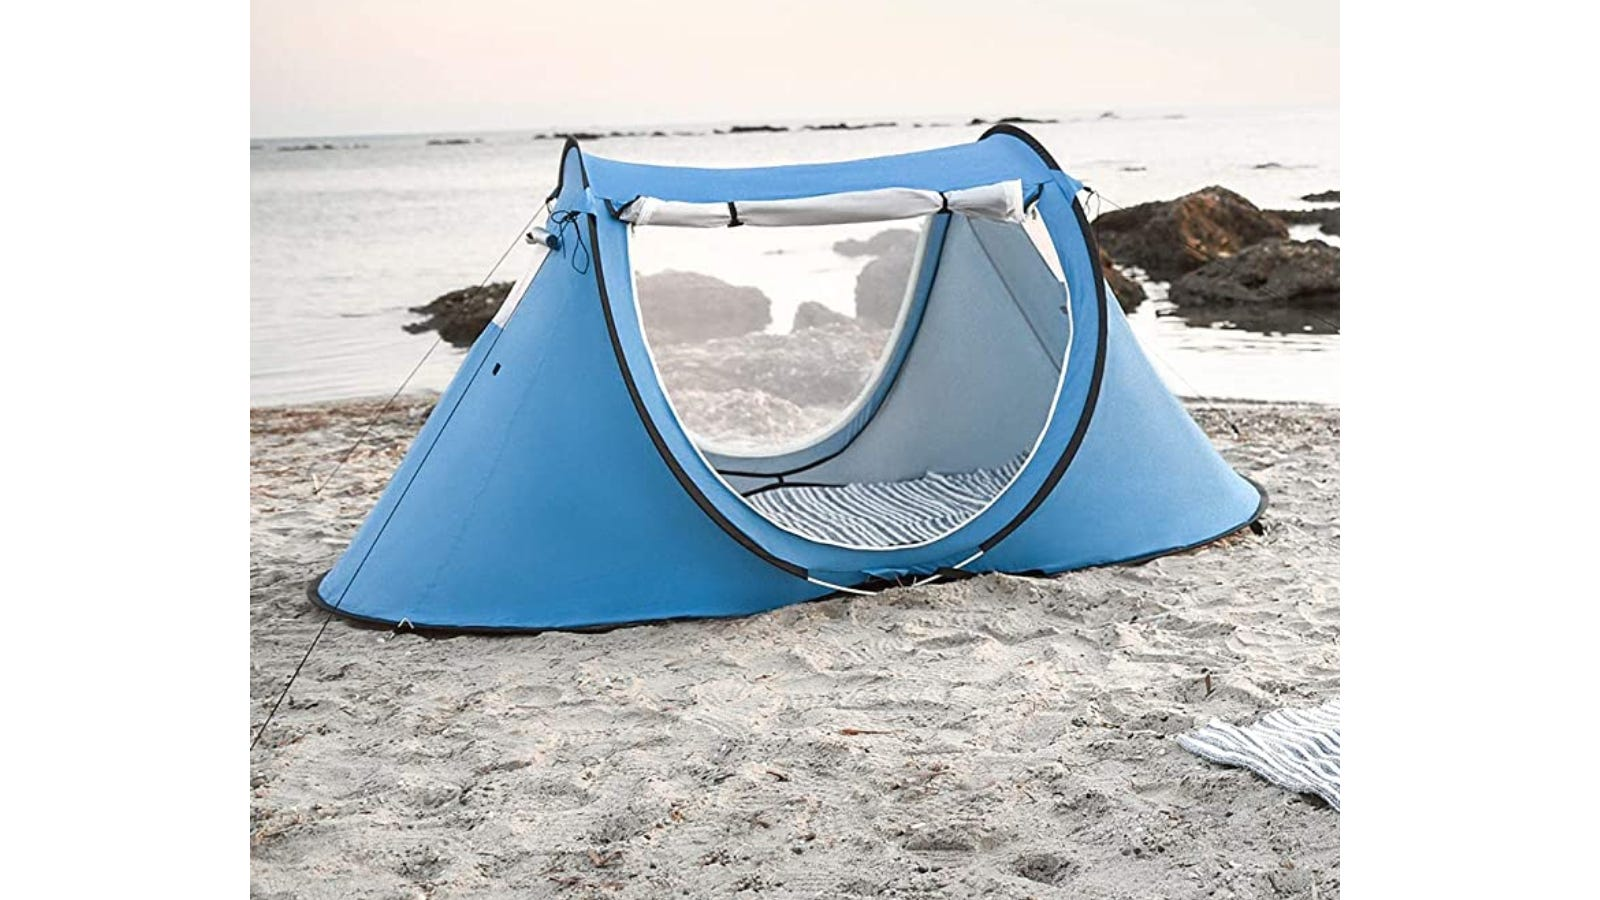 A blue mosquito net tent sitting on the sand of a beach.